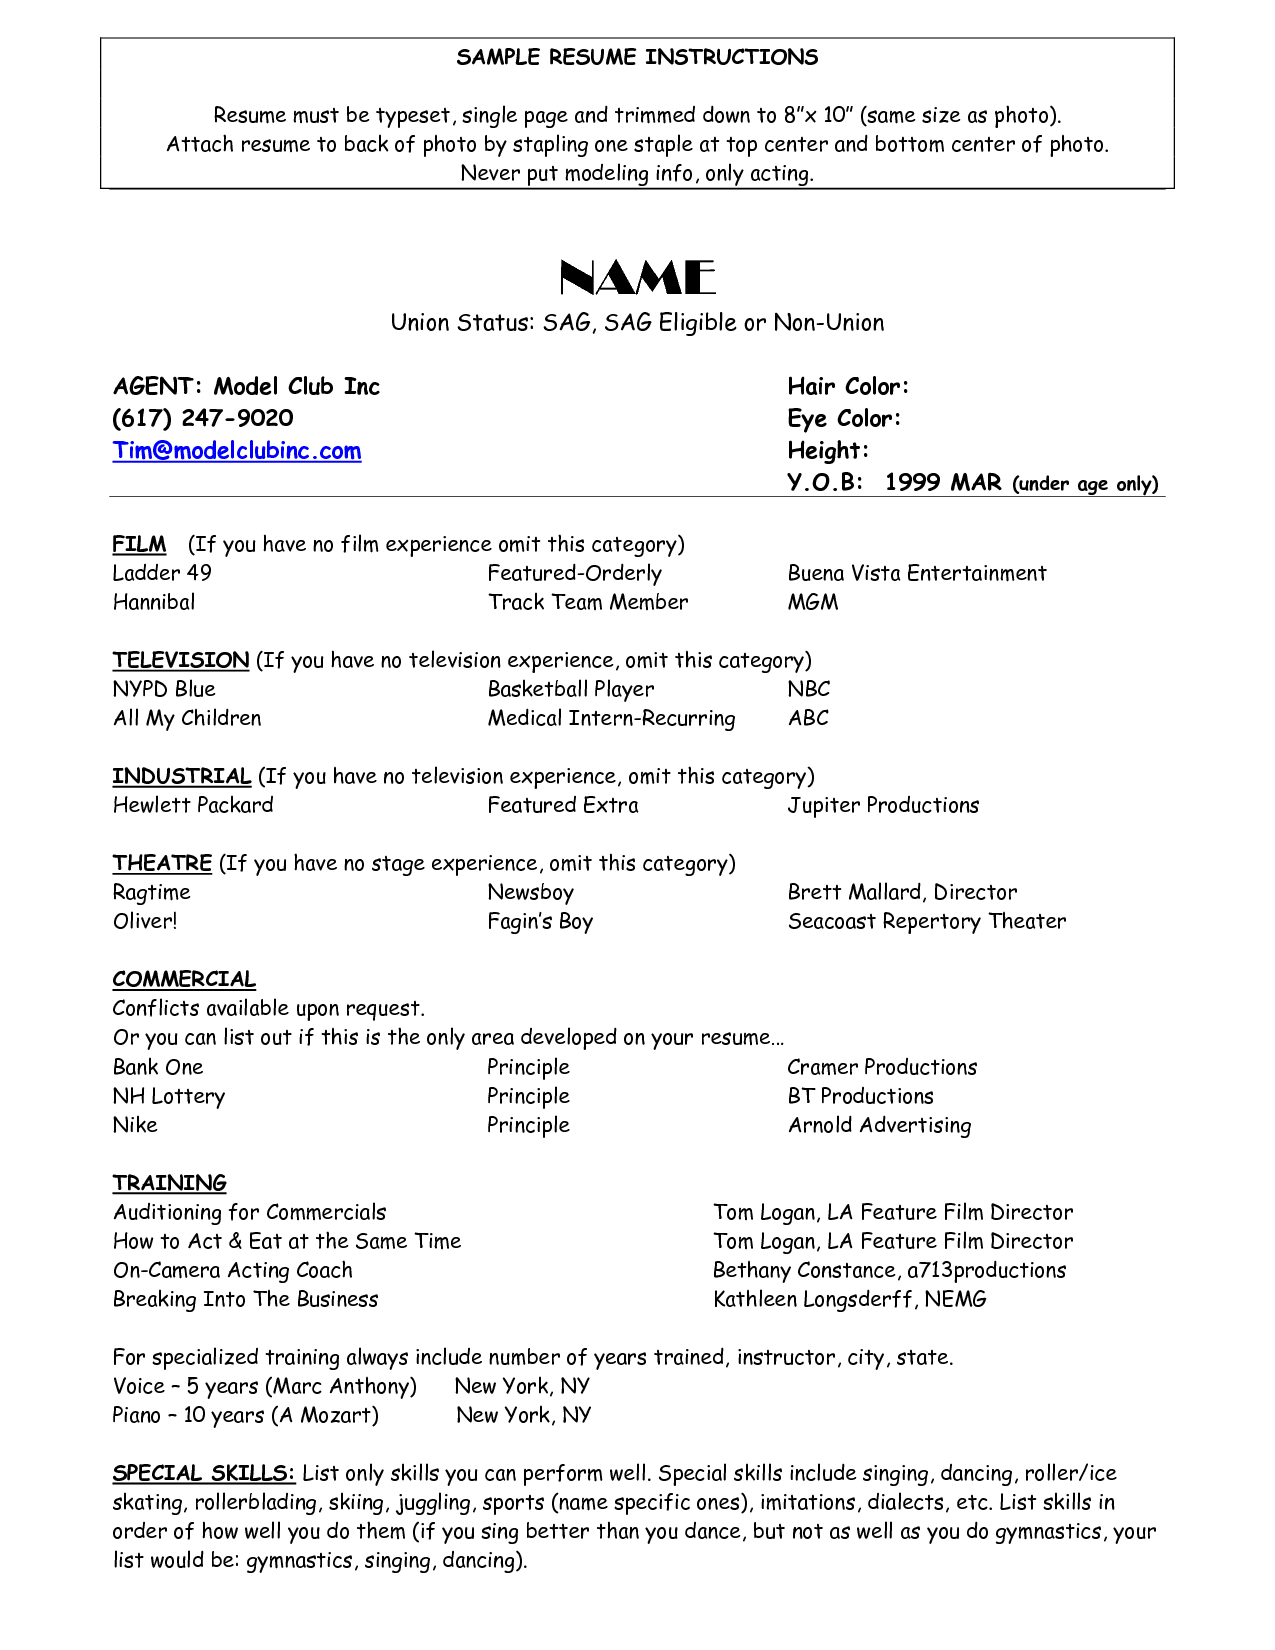 Actors Resume Samples Resume For Child Actor Scope Of Work Template Special